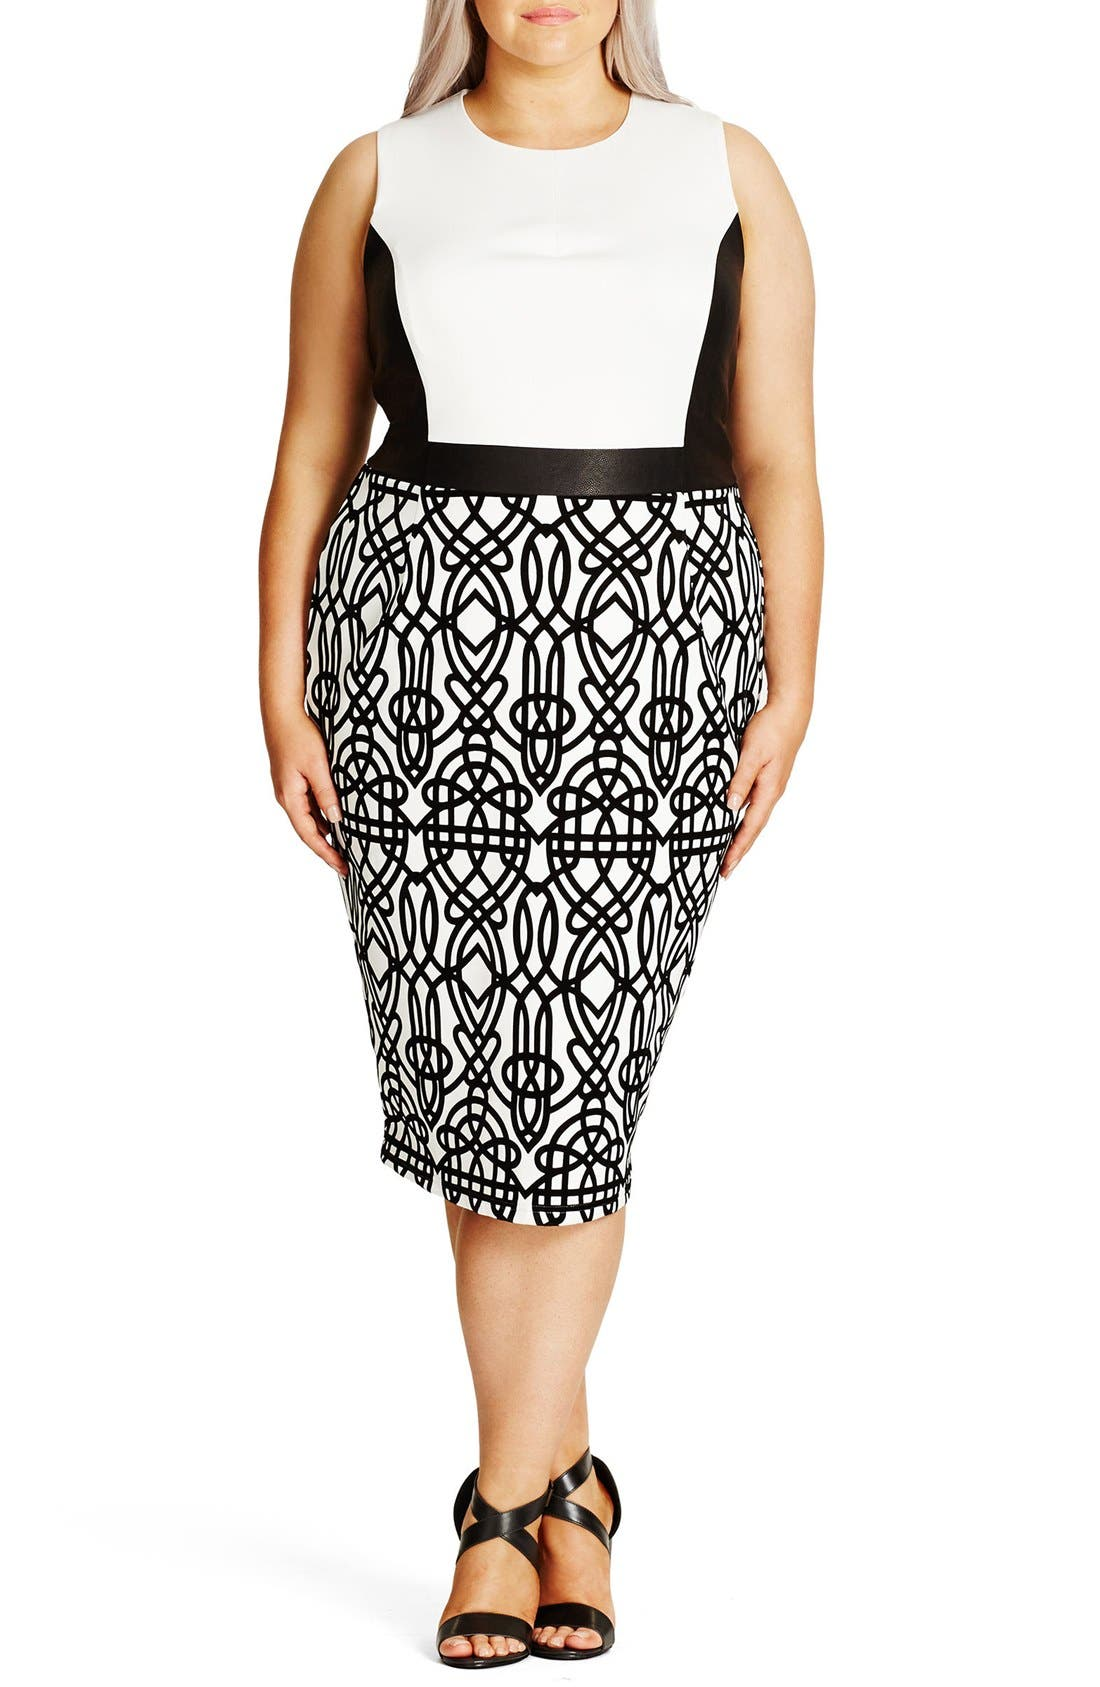 CITY CHIC 'Art Deco' Print Block Sheath Dress